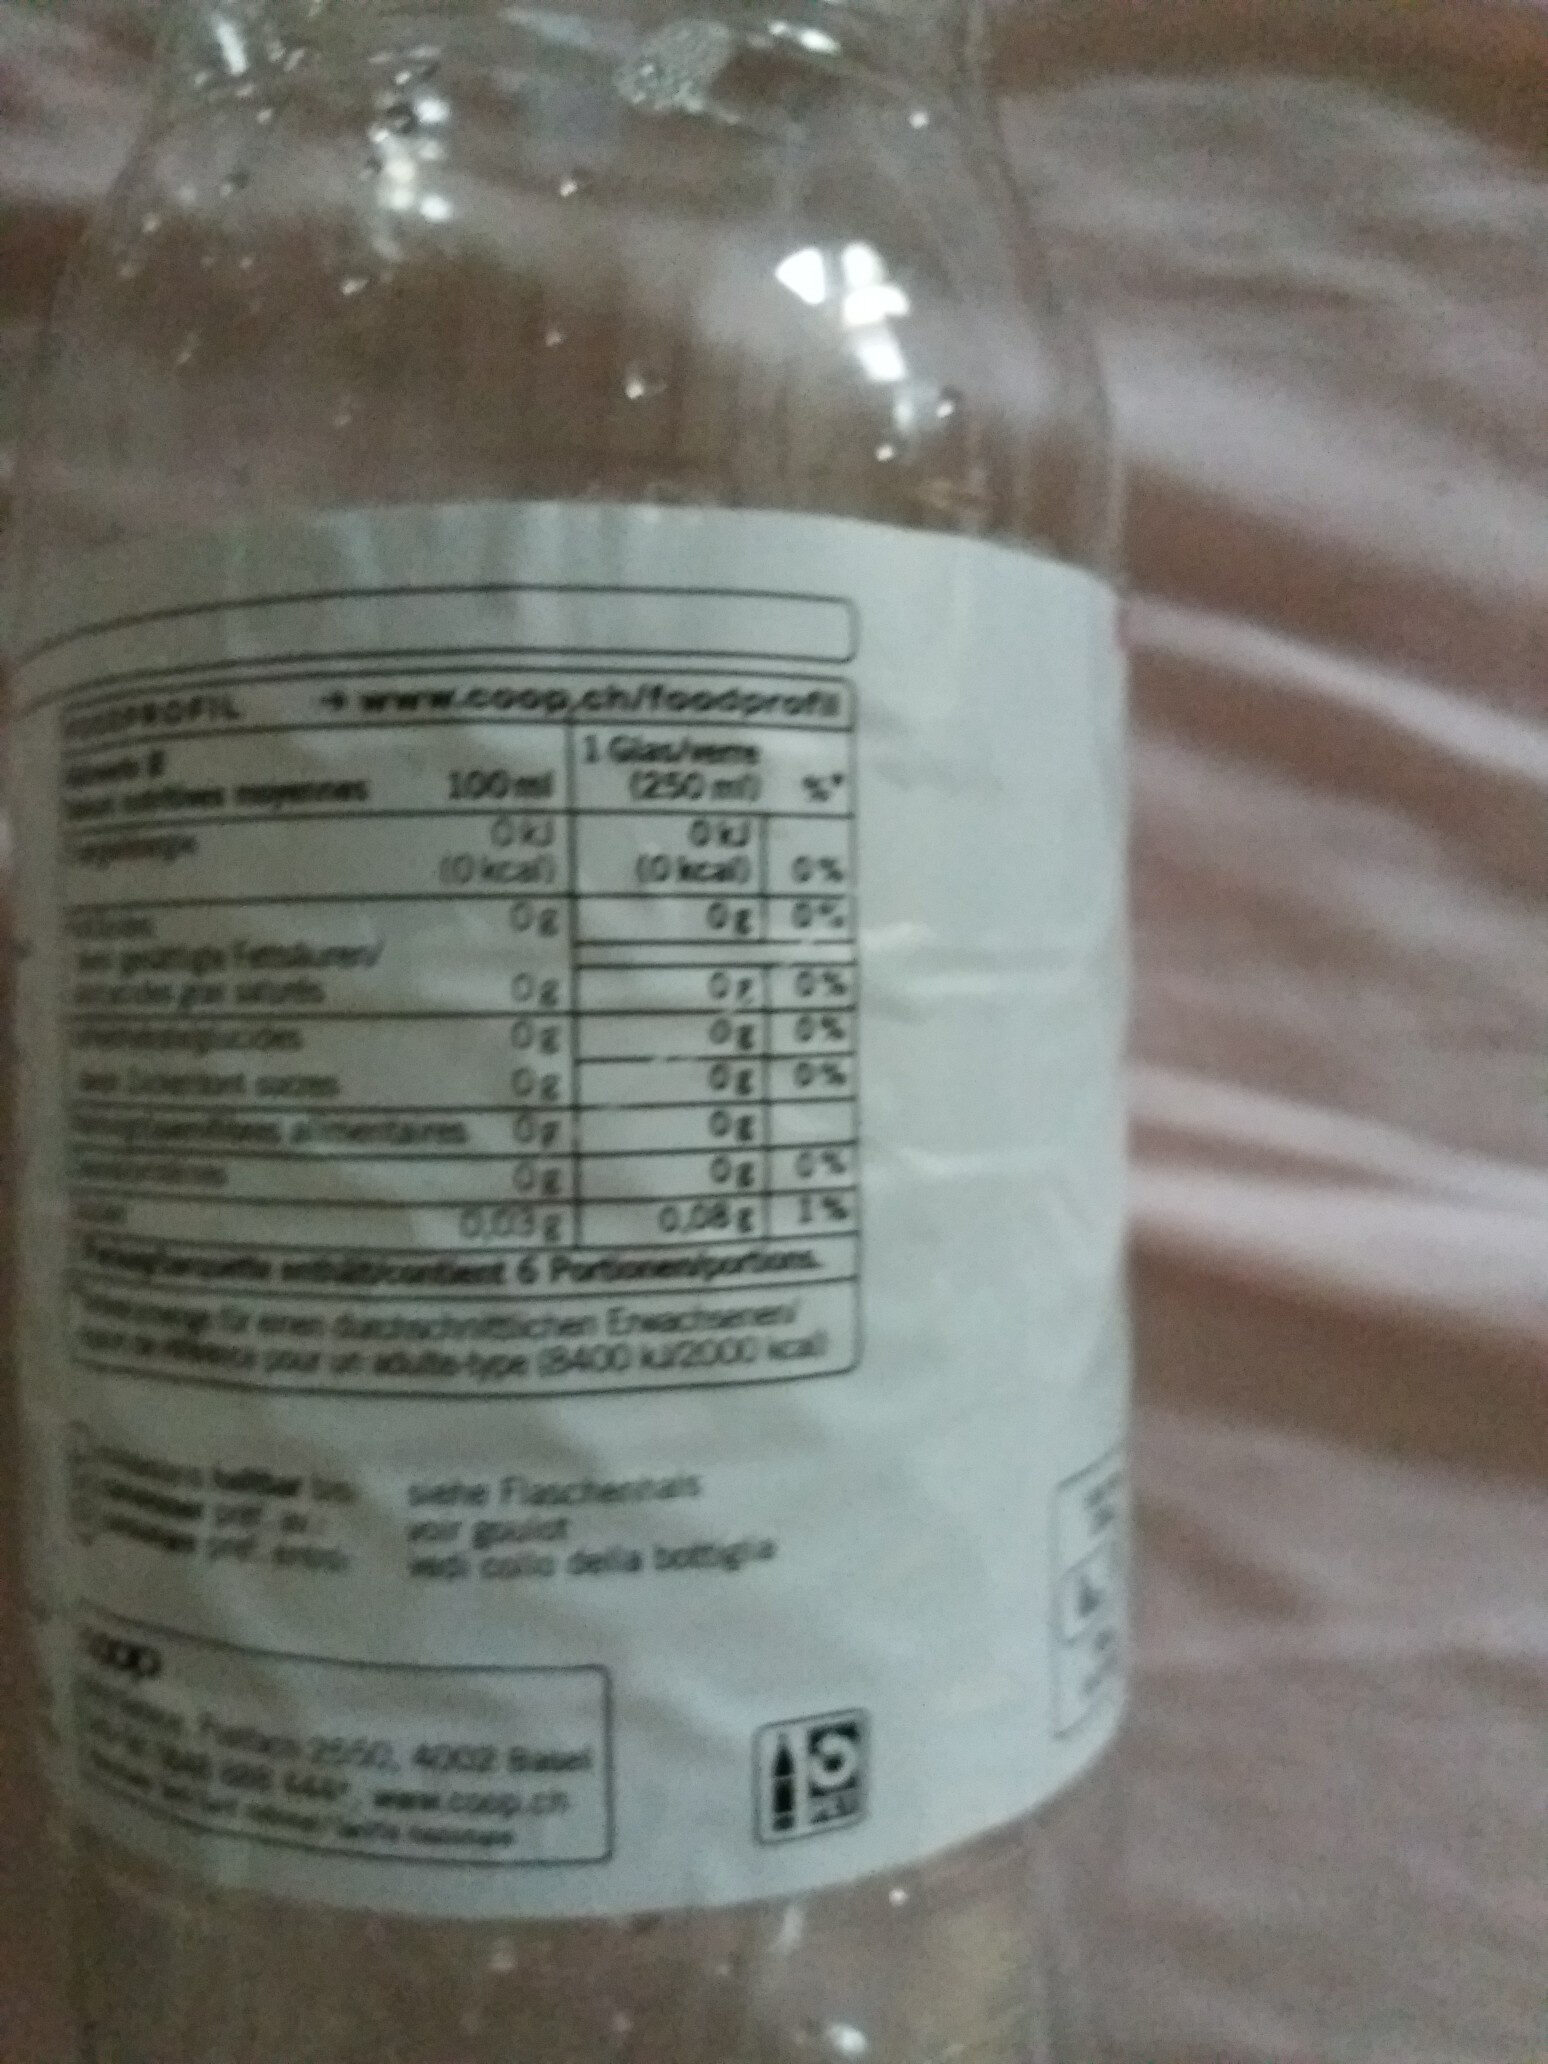 jus de citron light - Nutrition facts